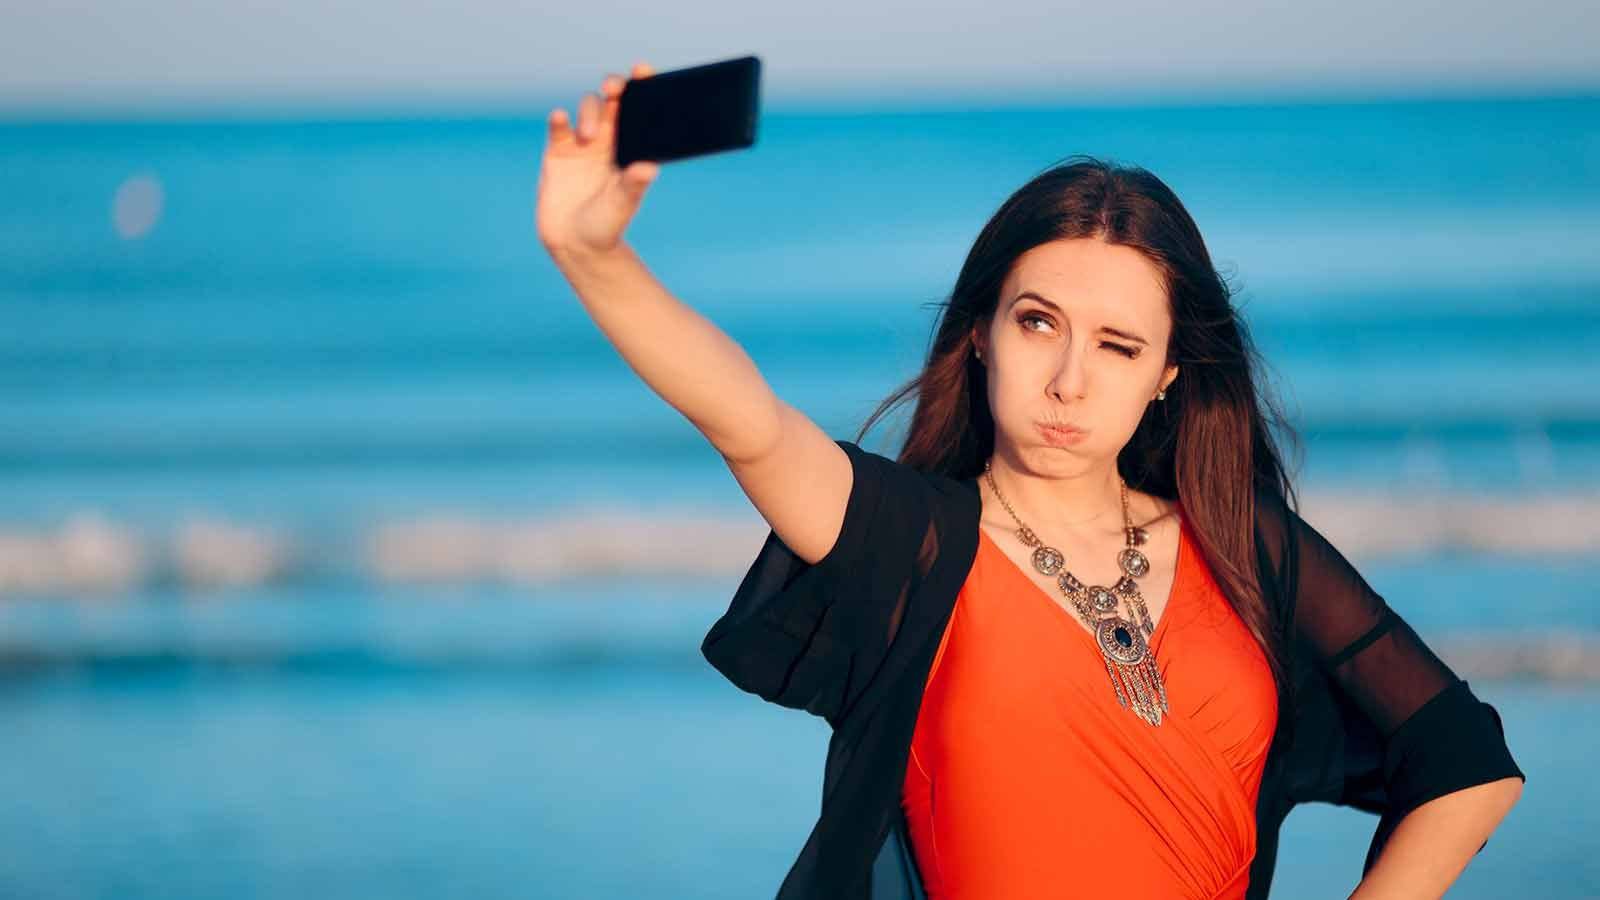 A woman on a beach taking a selfie with her phone.